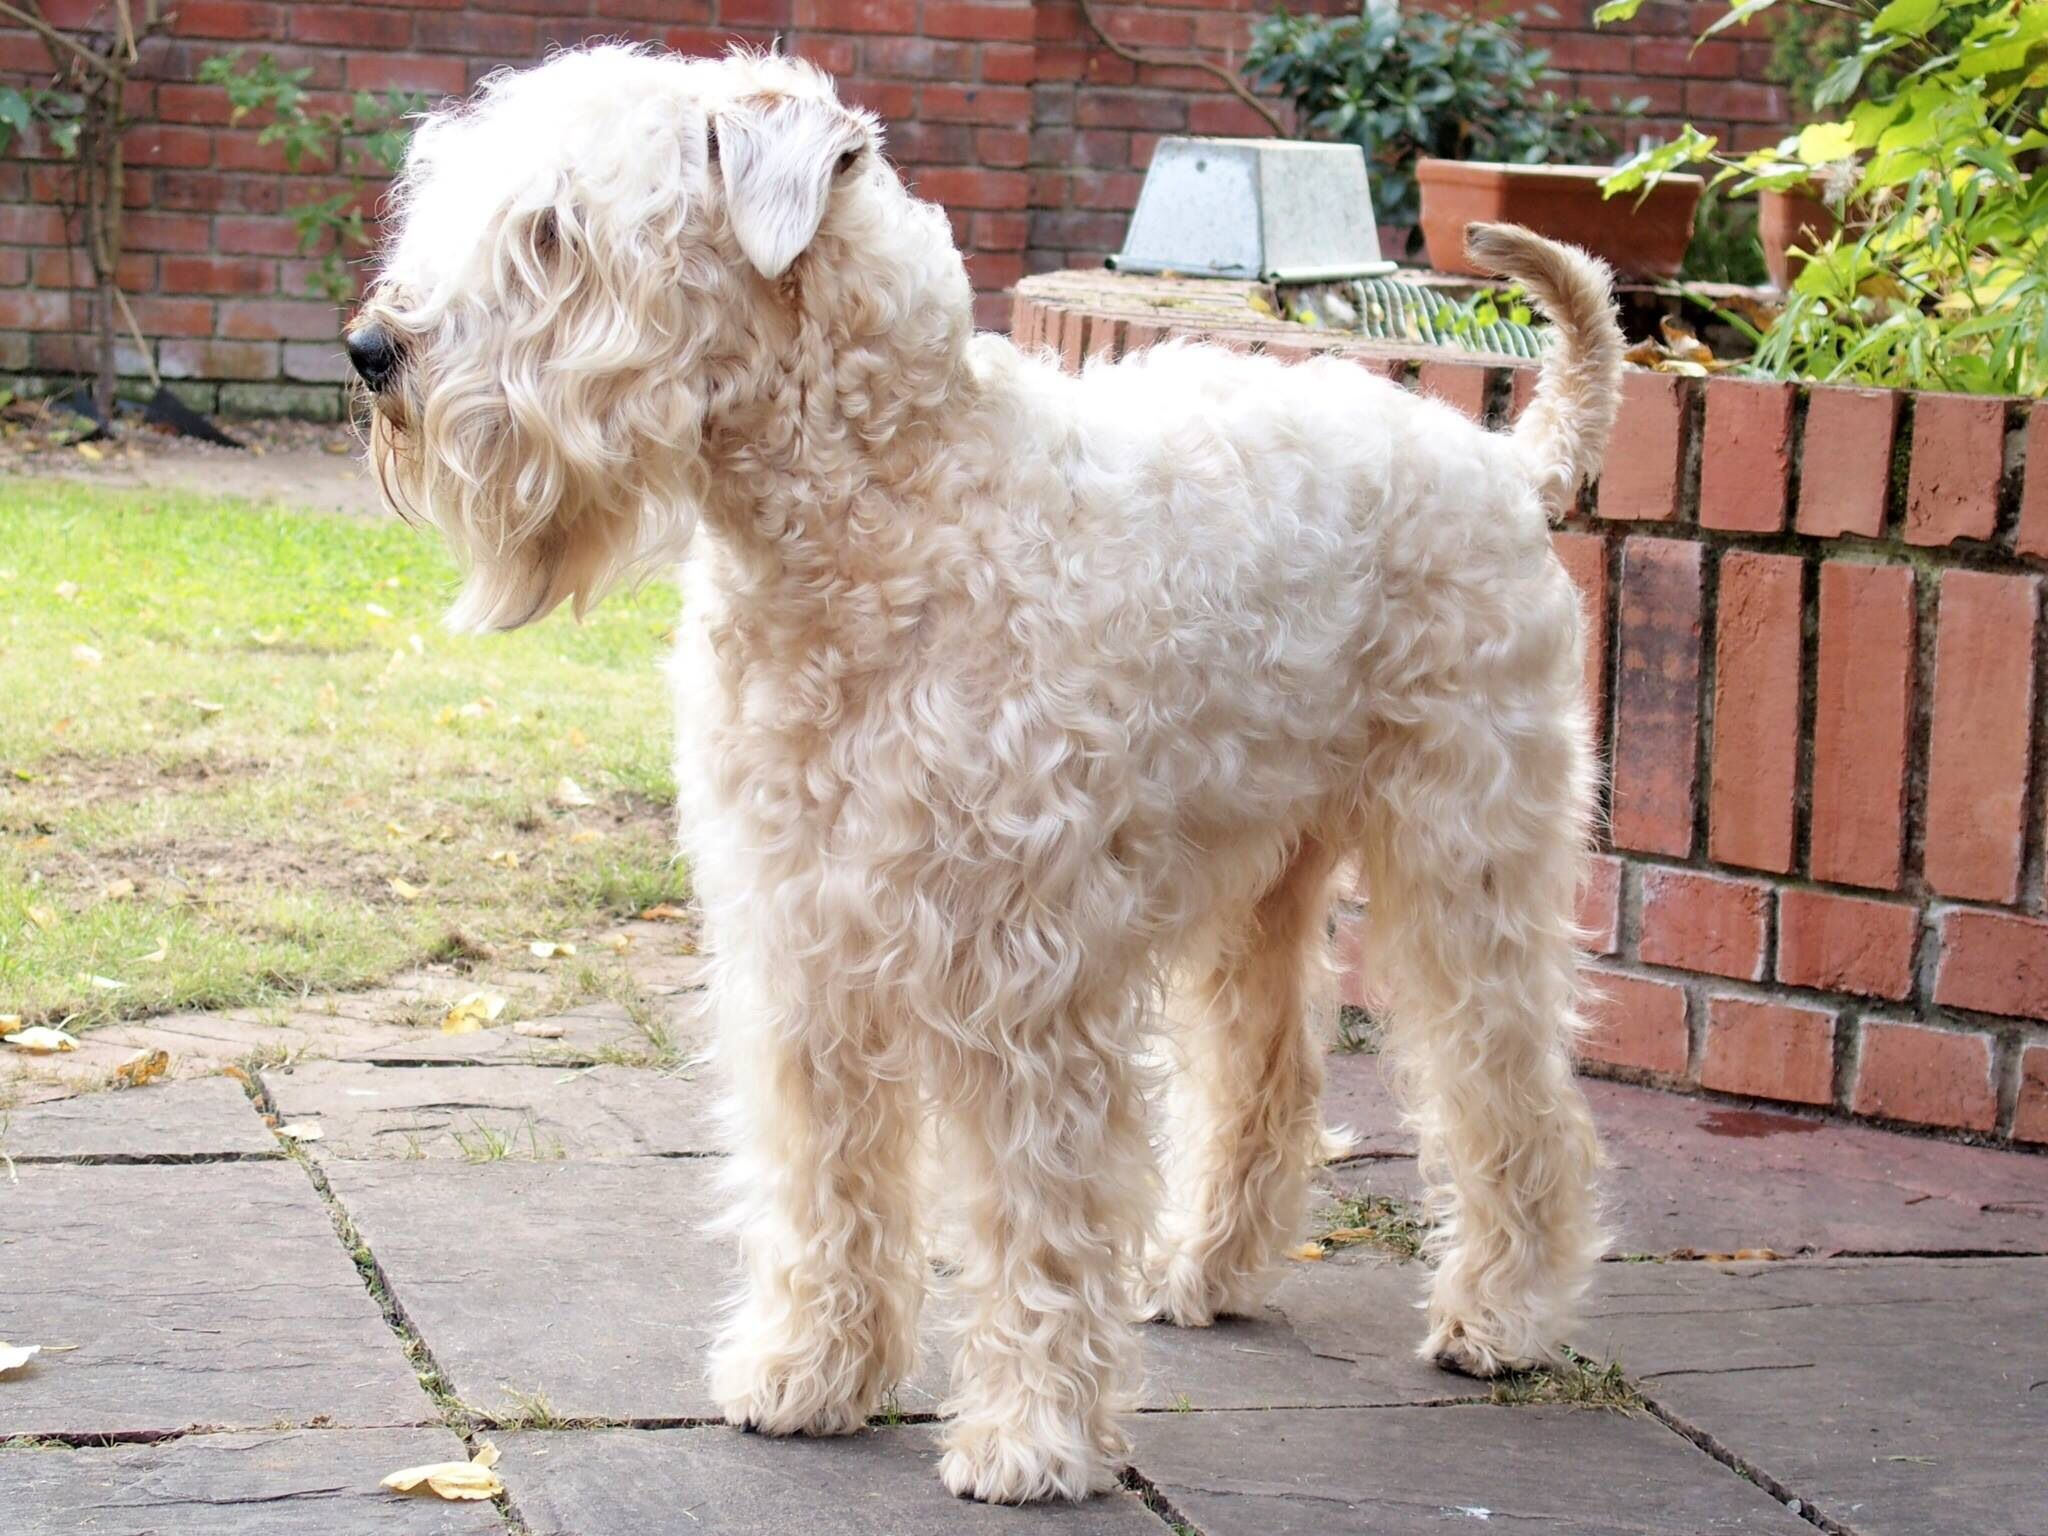 Not Sure About Curly Here Soft Coated Wheaten Terrier Irish Terrier Companion Dog